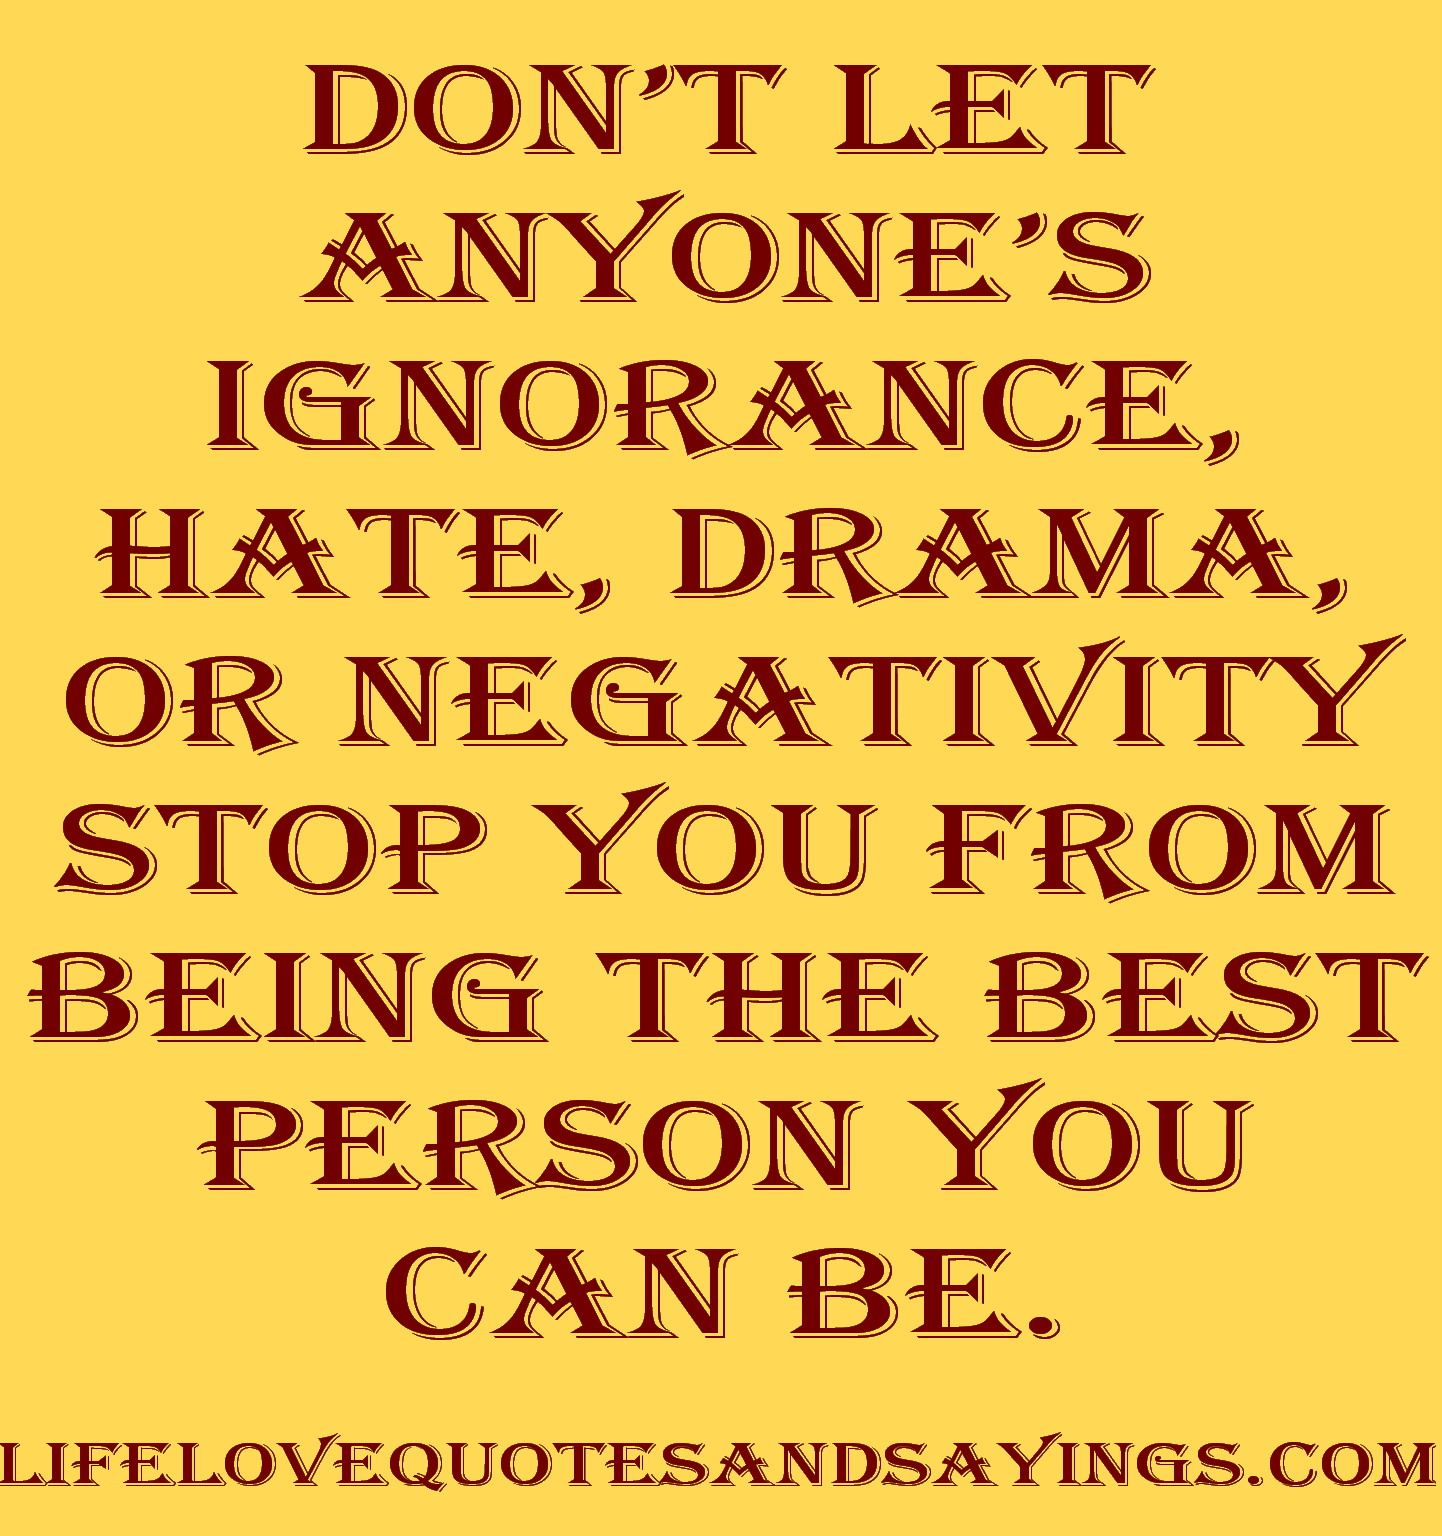 Funny Quotes About Love And Life Be The Best Person You Can Be Quotes  Pinterest  Thoughts